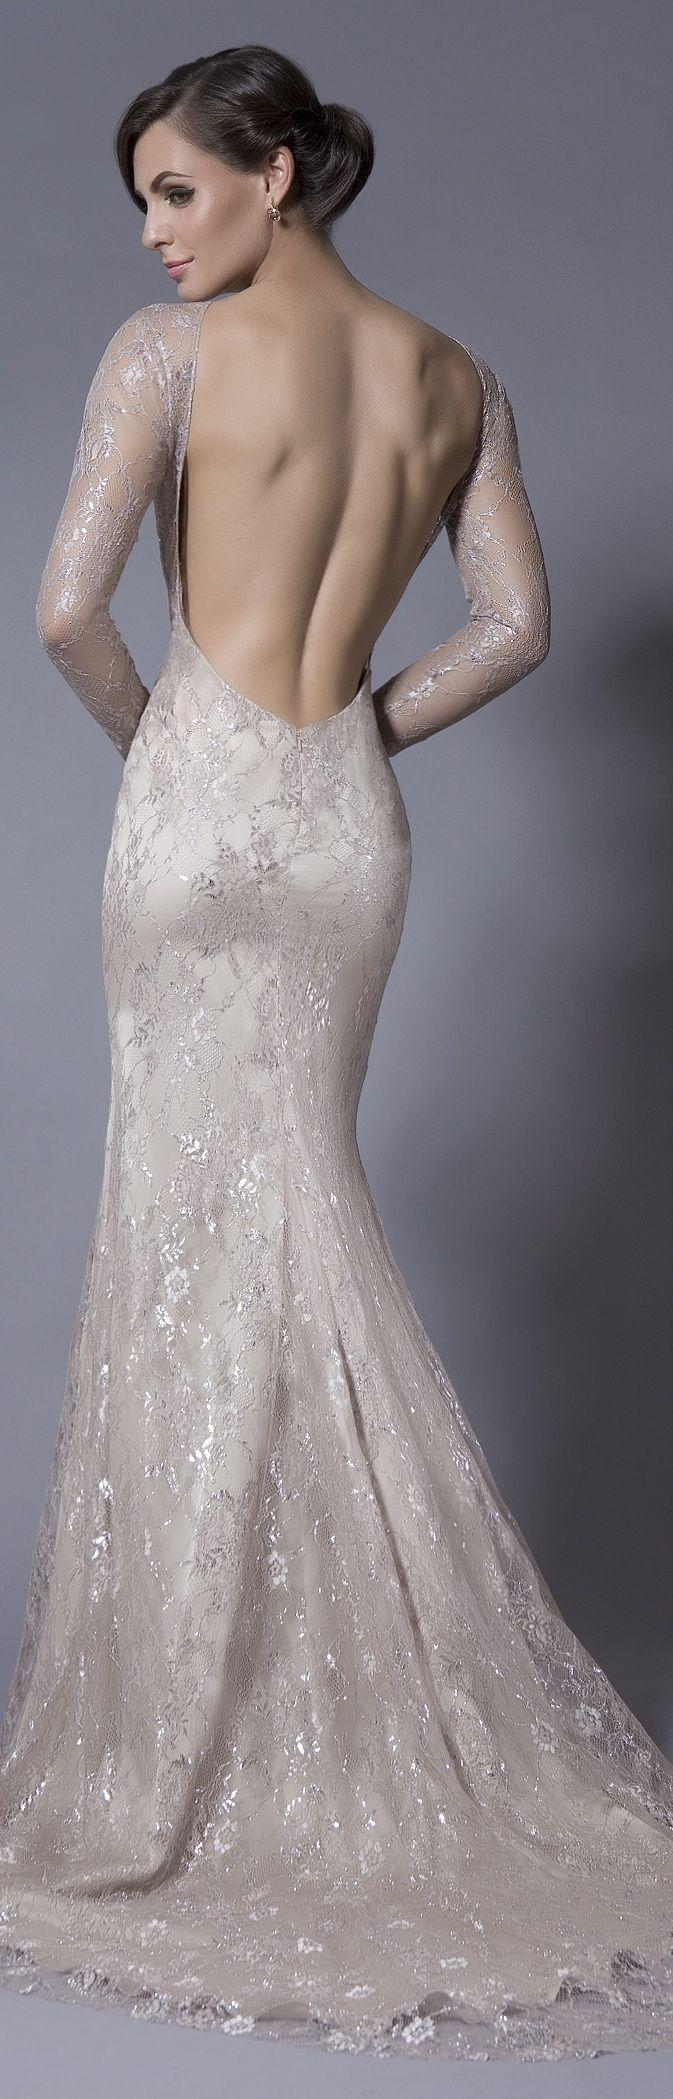 Mariage - Bien Savvy Haute Couture 2013 ~